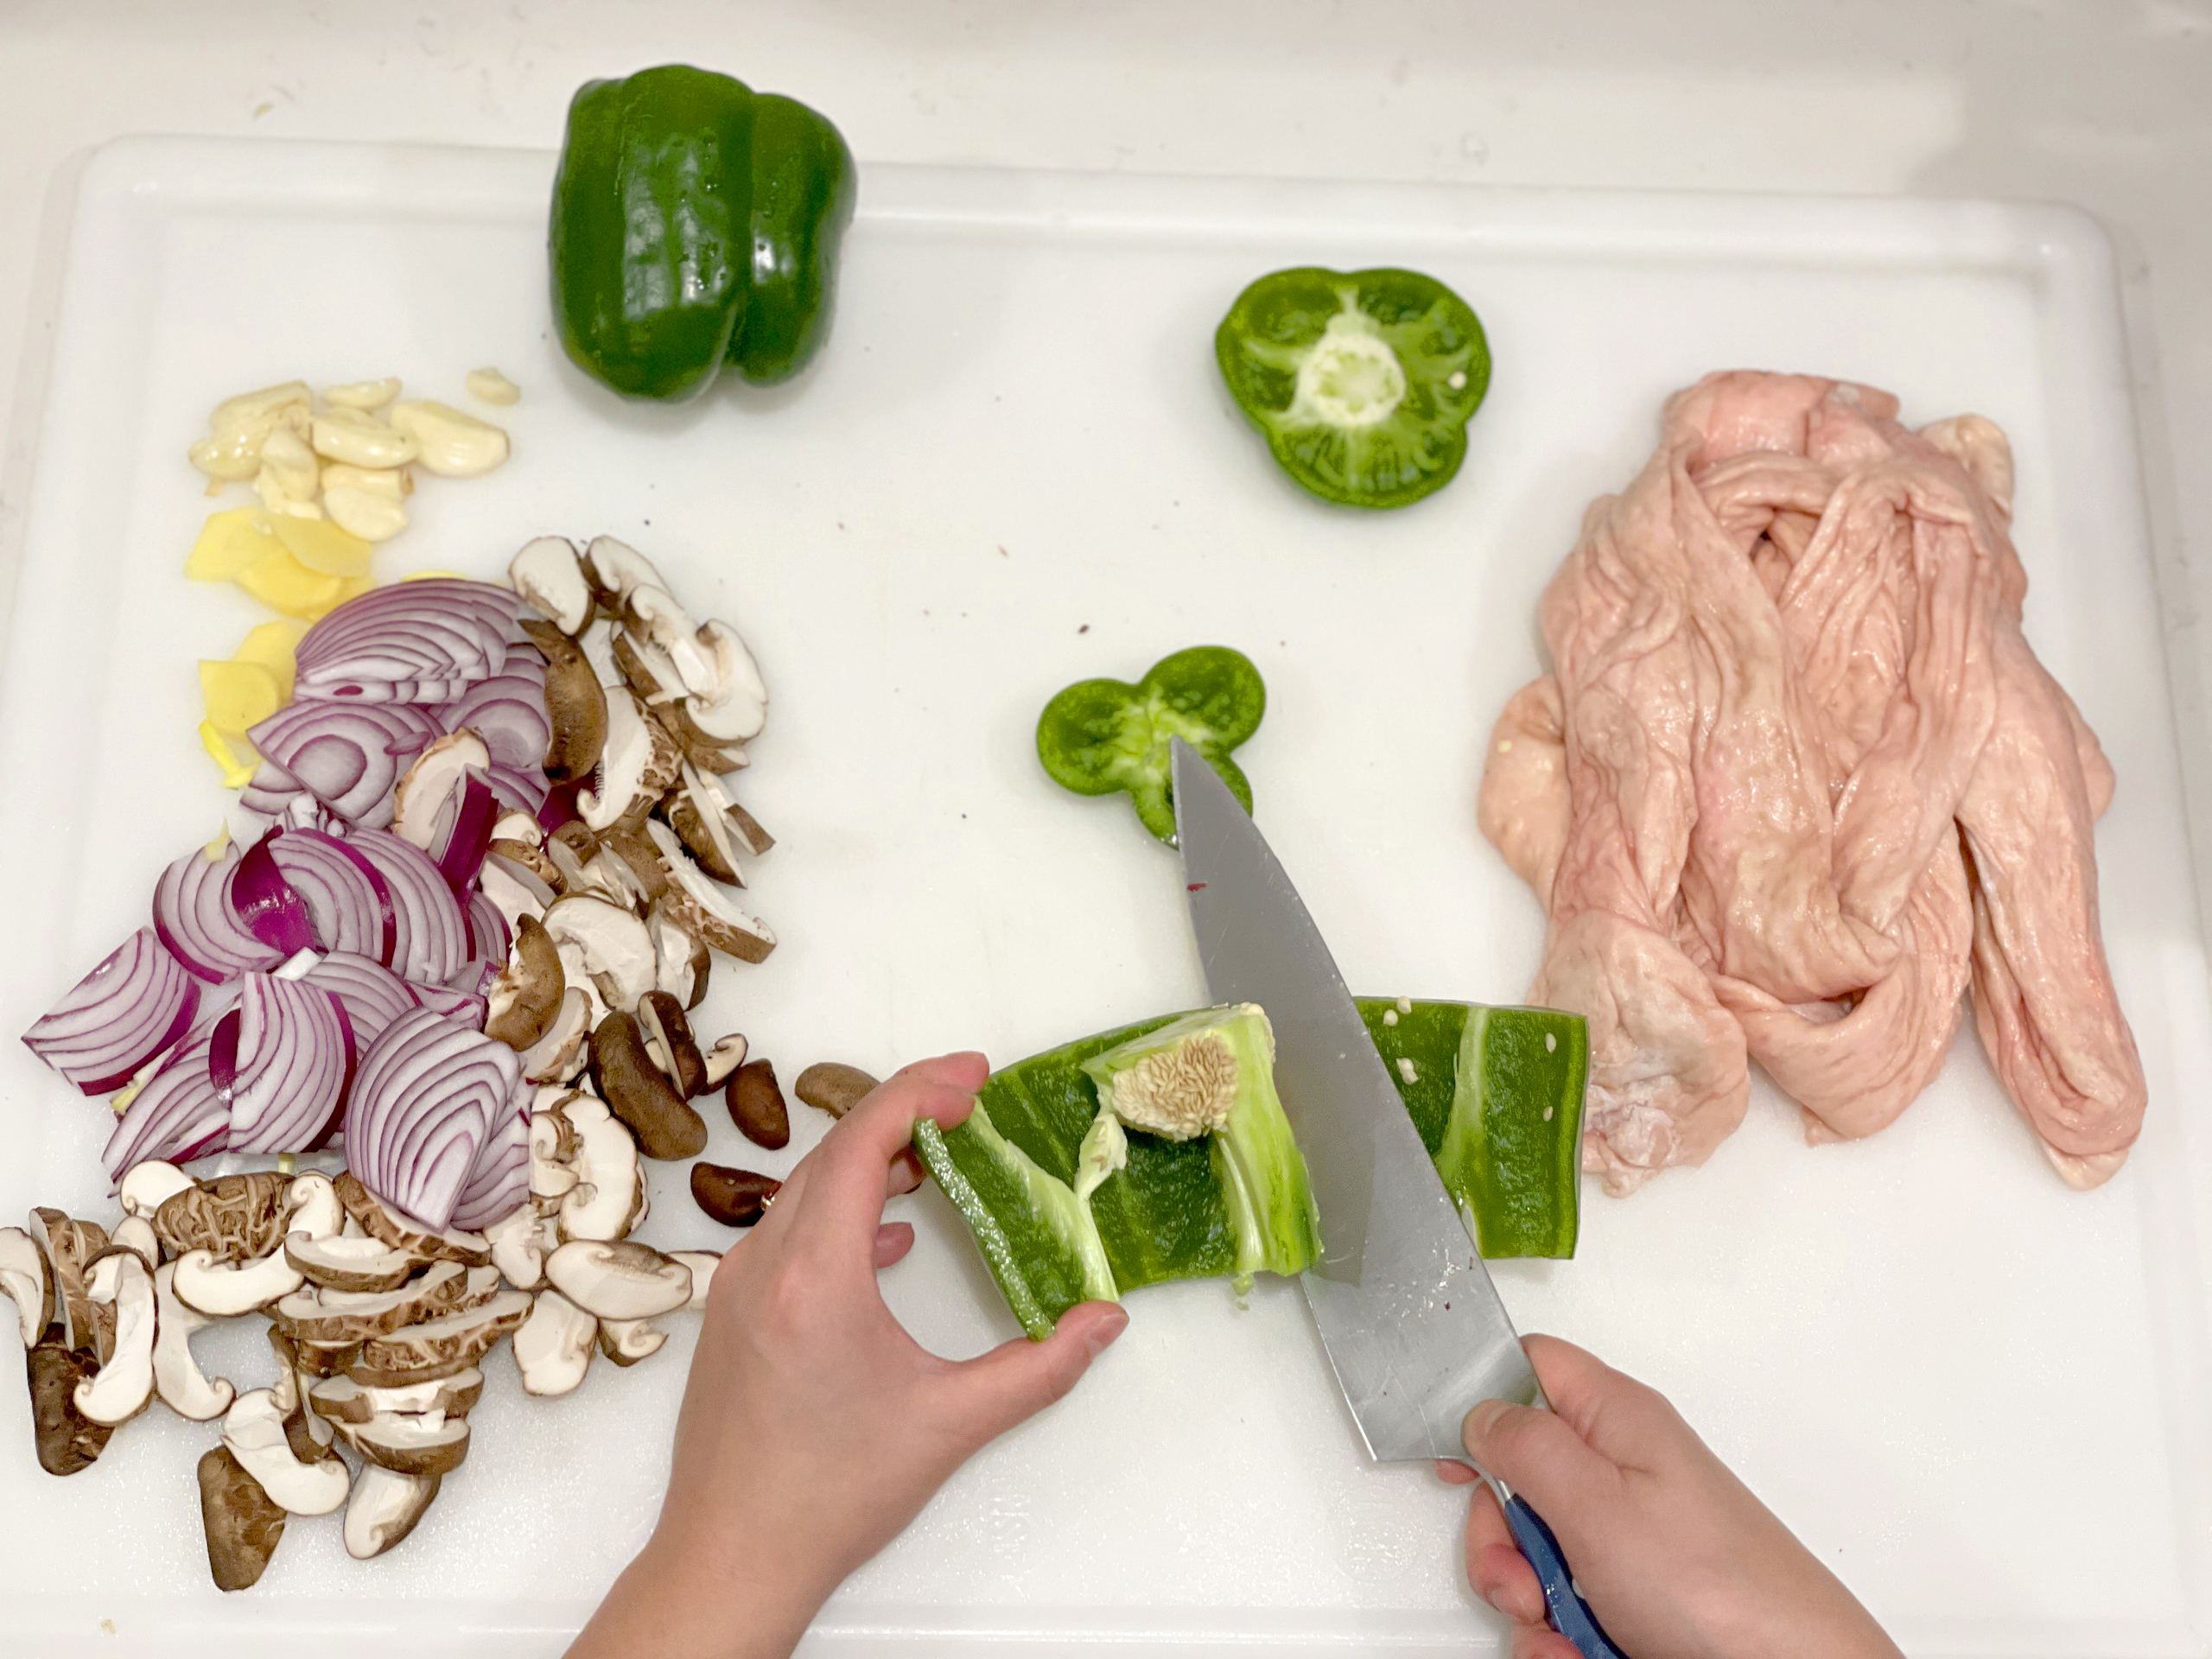 A pair of medium-light skinned hands slice the seeds out of a green pepper using a large knife on a white cutting board, seen from above. To the left is a pile of sliced mushrooms and red onions, and garlic. On the right is the raw skin of a chicken carcass.